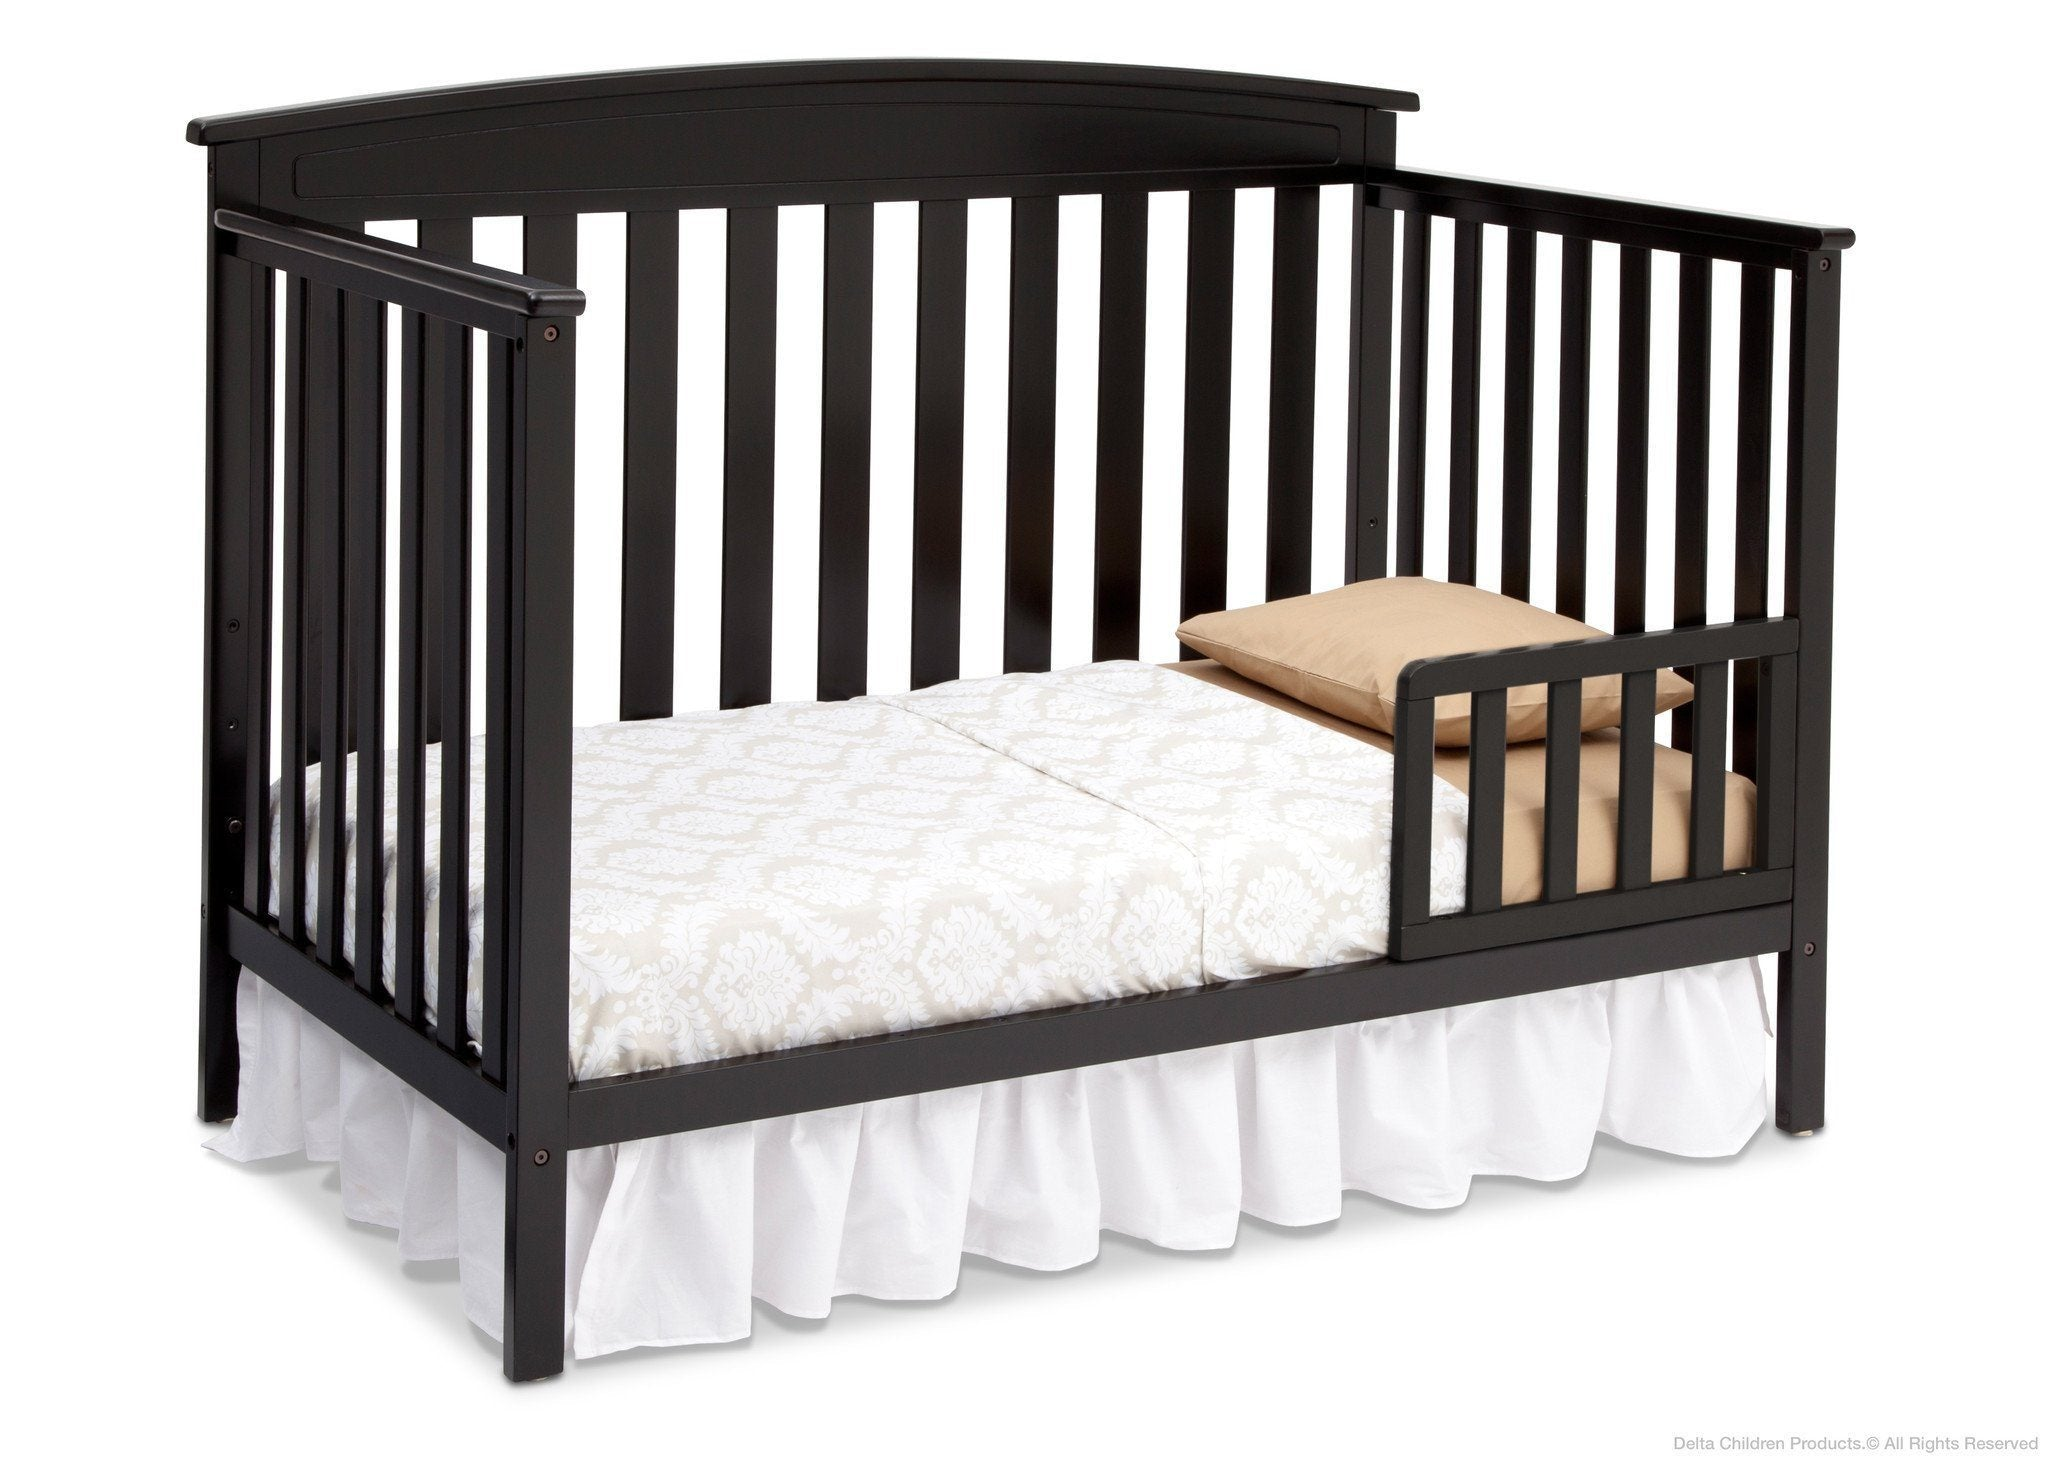 Delta Children Black (001) Gateway 4-in-1 Crib, Toddler Bed Conversion with Toddler Guardrail a4a